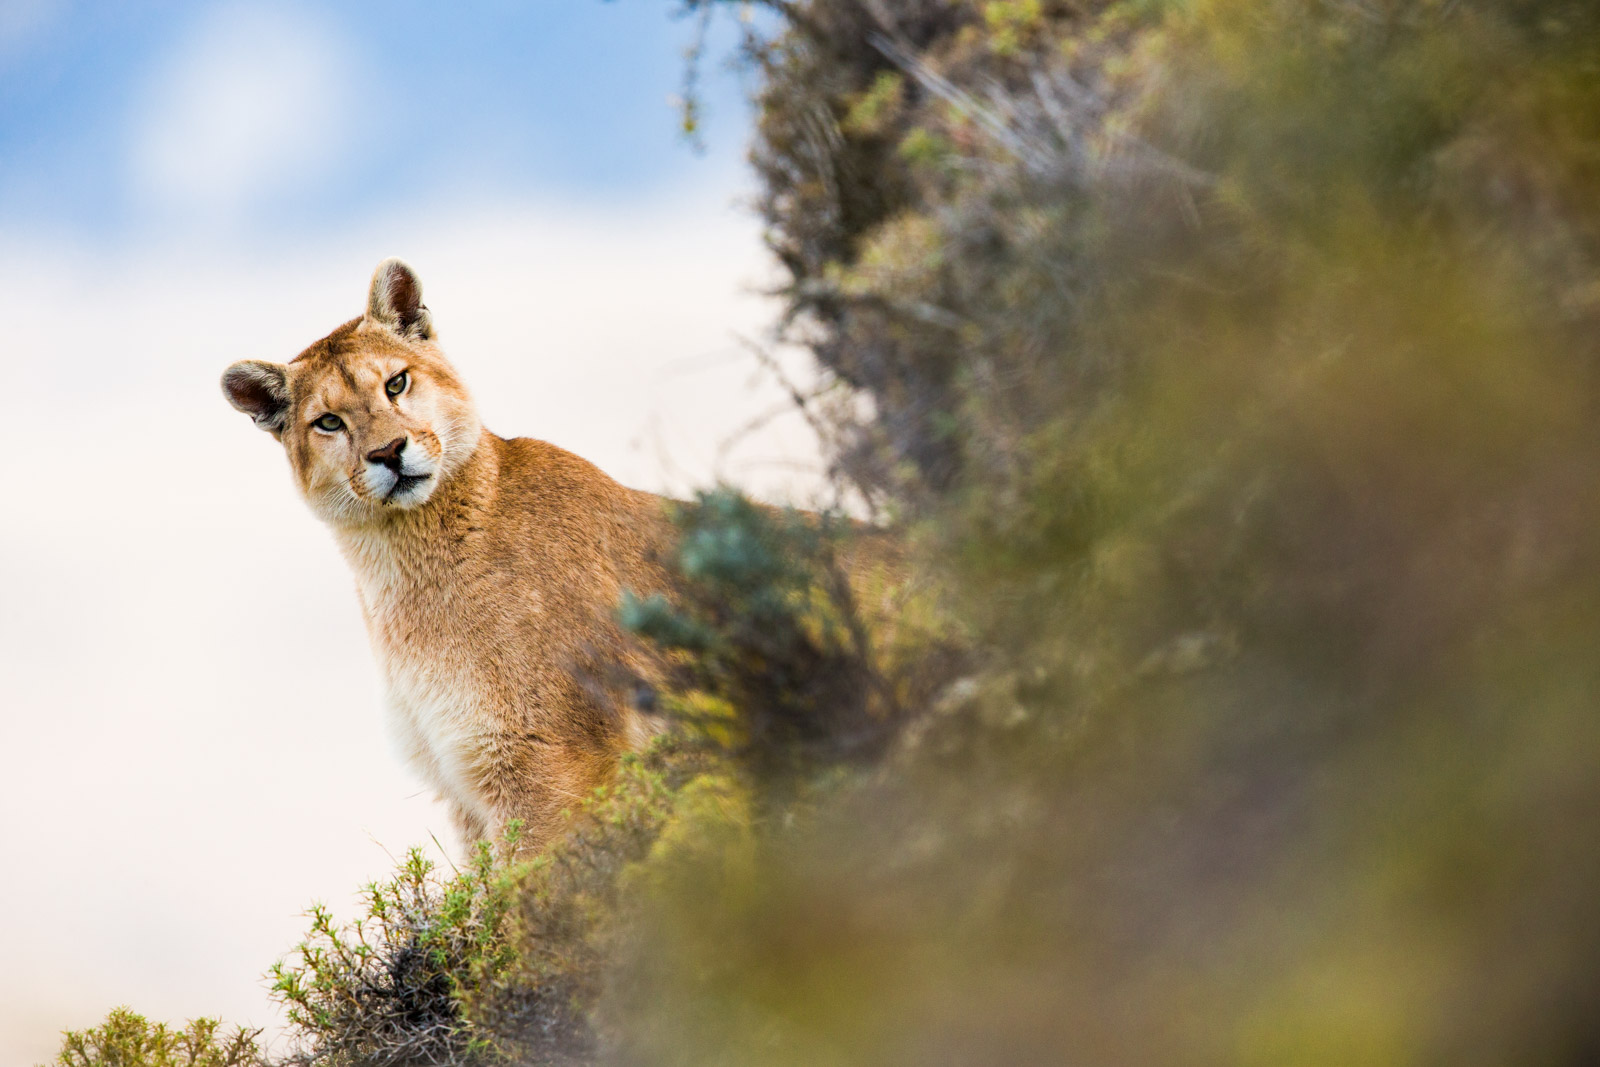 Puma during our Pumas of Patagonia Photo Tour